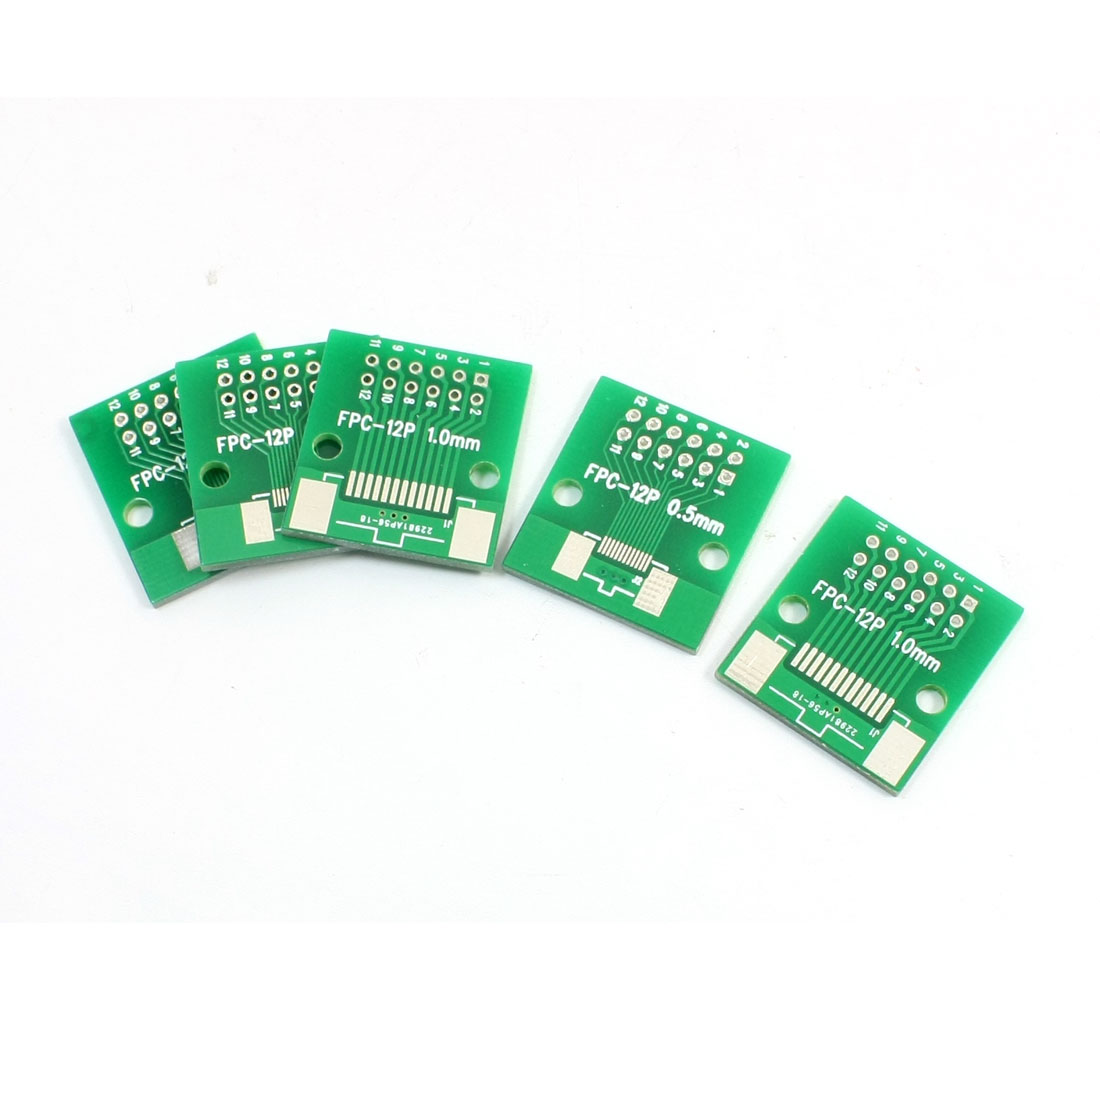 5 Pcs 0.5mm to 1mm Pitch FPC12 DIP12 2 Sides DIP Mounting SMD SMT IC PCB Adapter Converter Plate Board